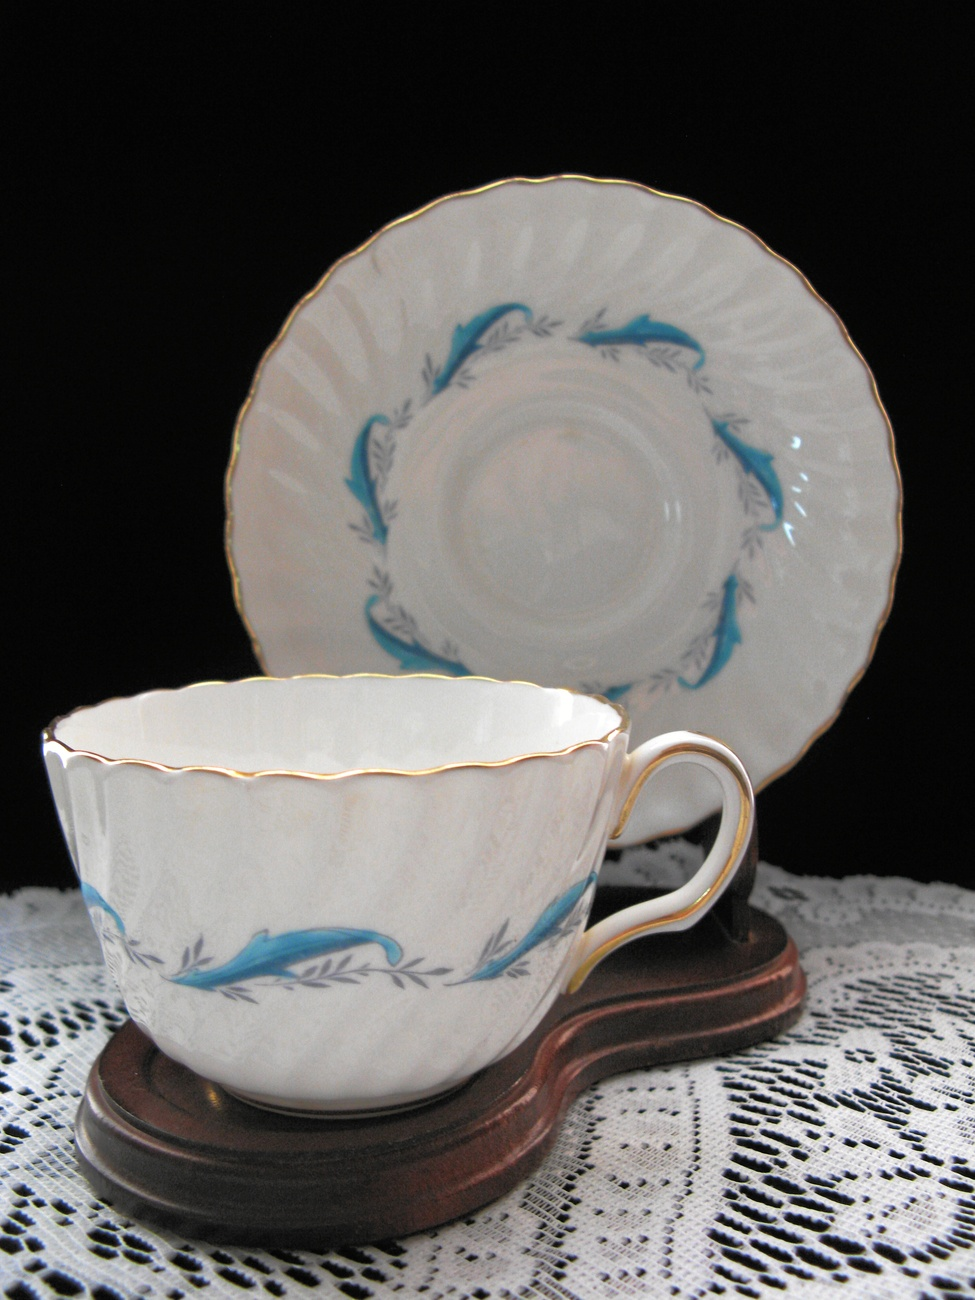 Primary image for Minton Downing Fine Bone China Cup & Saucer